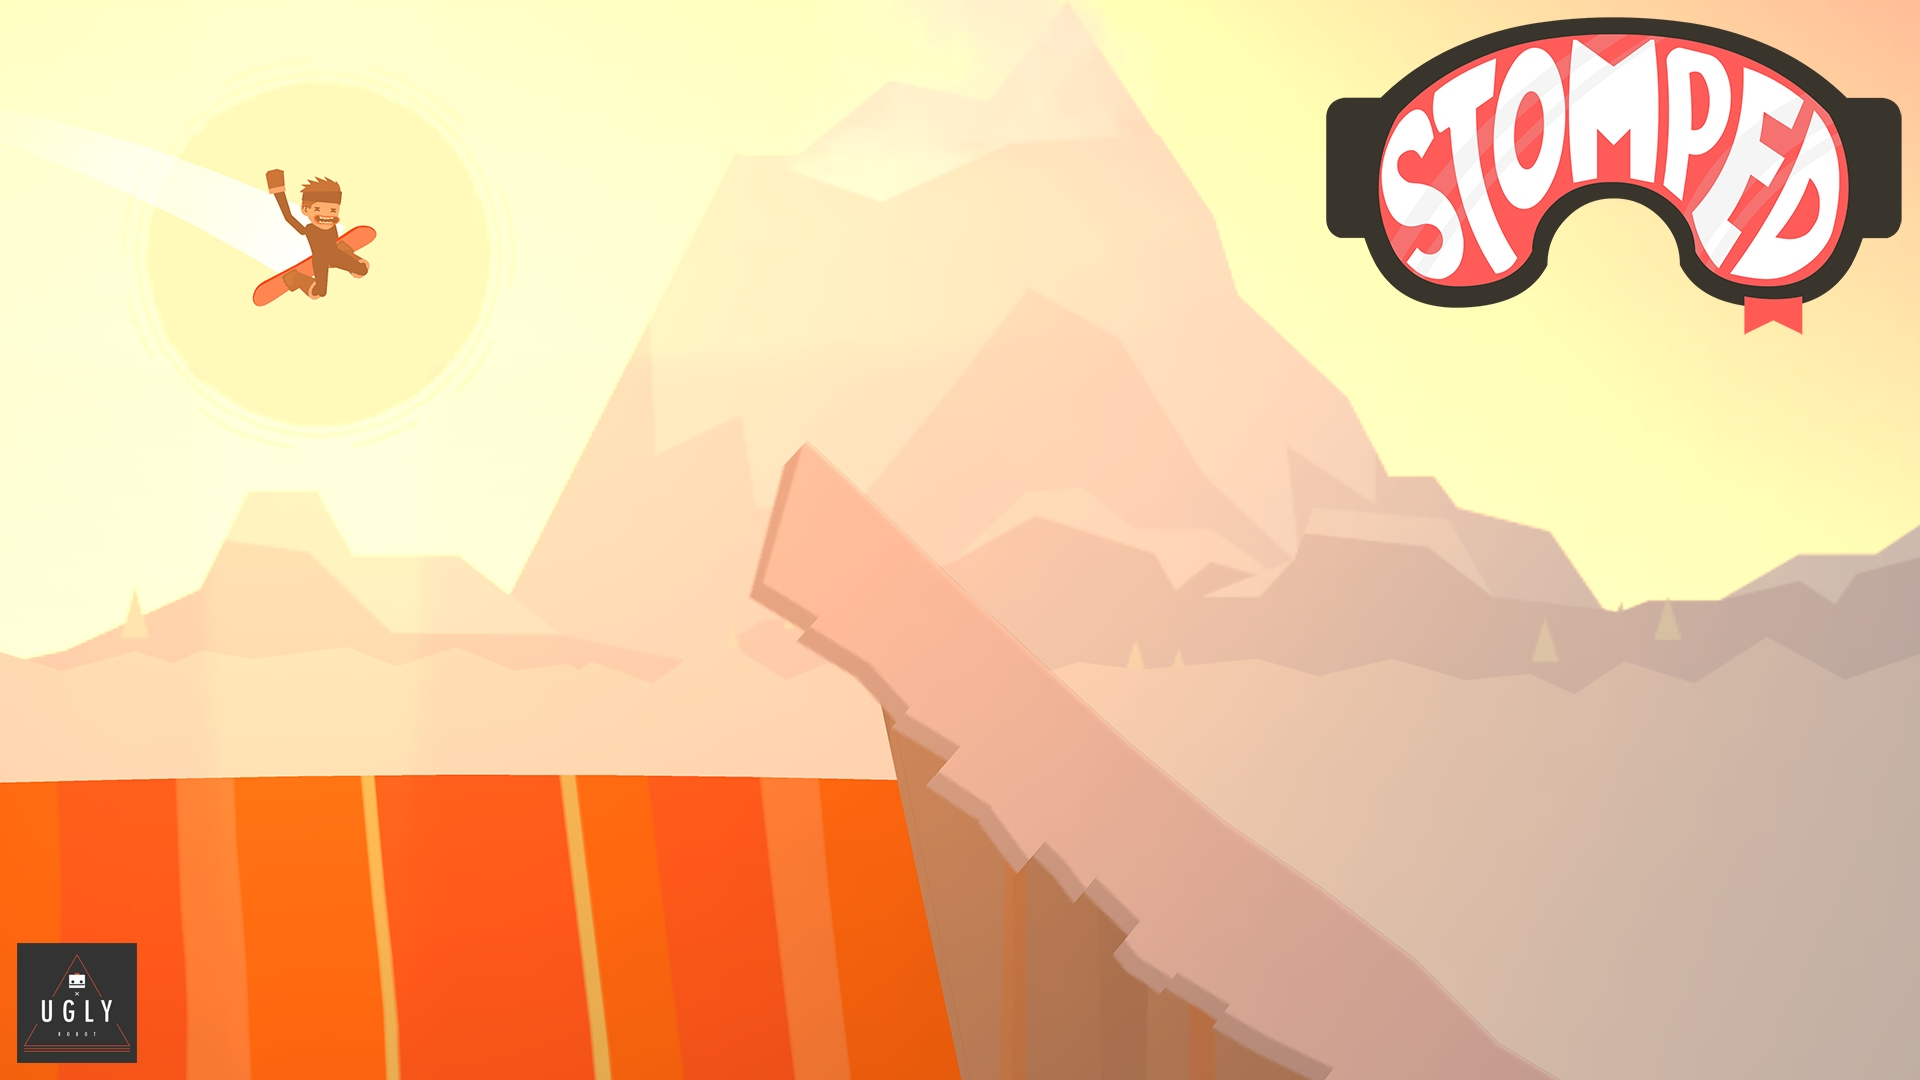 Conquer the mountain with style in the upcoming trick-heavy snowboarding game Stomped